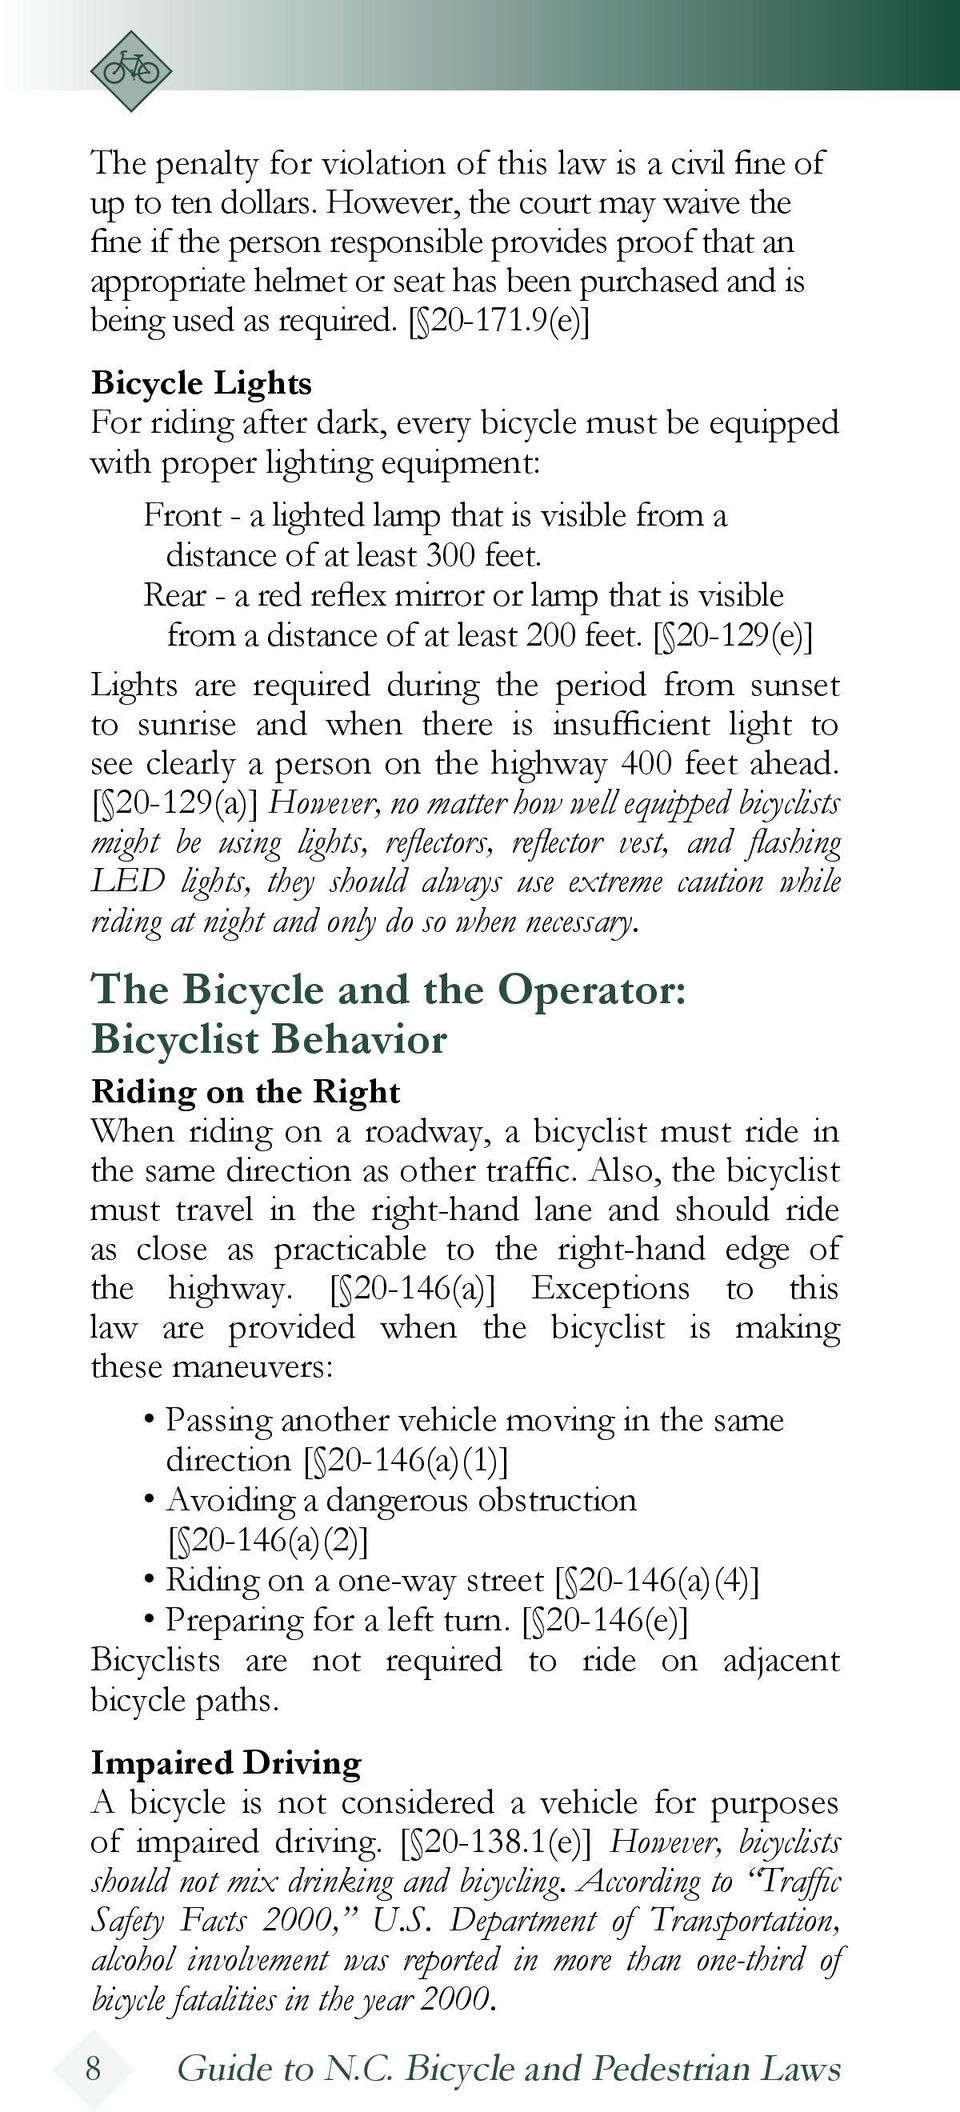 9(e)] Bicycle Lights For riding after dark, every bicycle must be equipped with proper lighting equipment: Front - a lighted lamp that is visible from a distance of at least 300 feet.